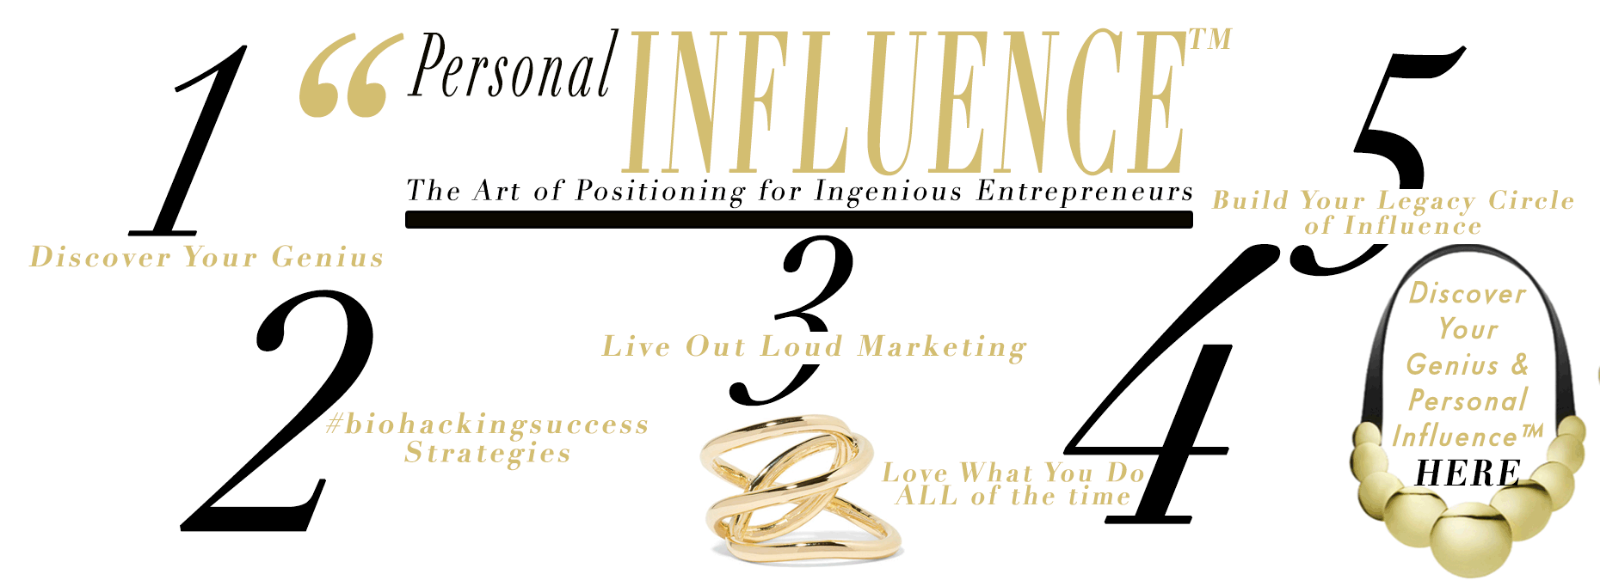 #-Personal-influence-Cover.png